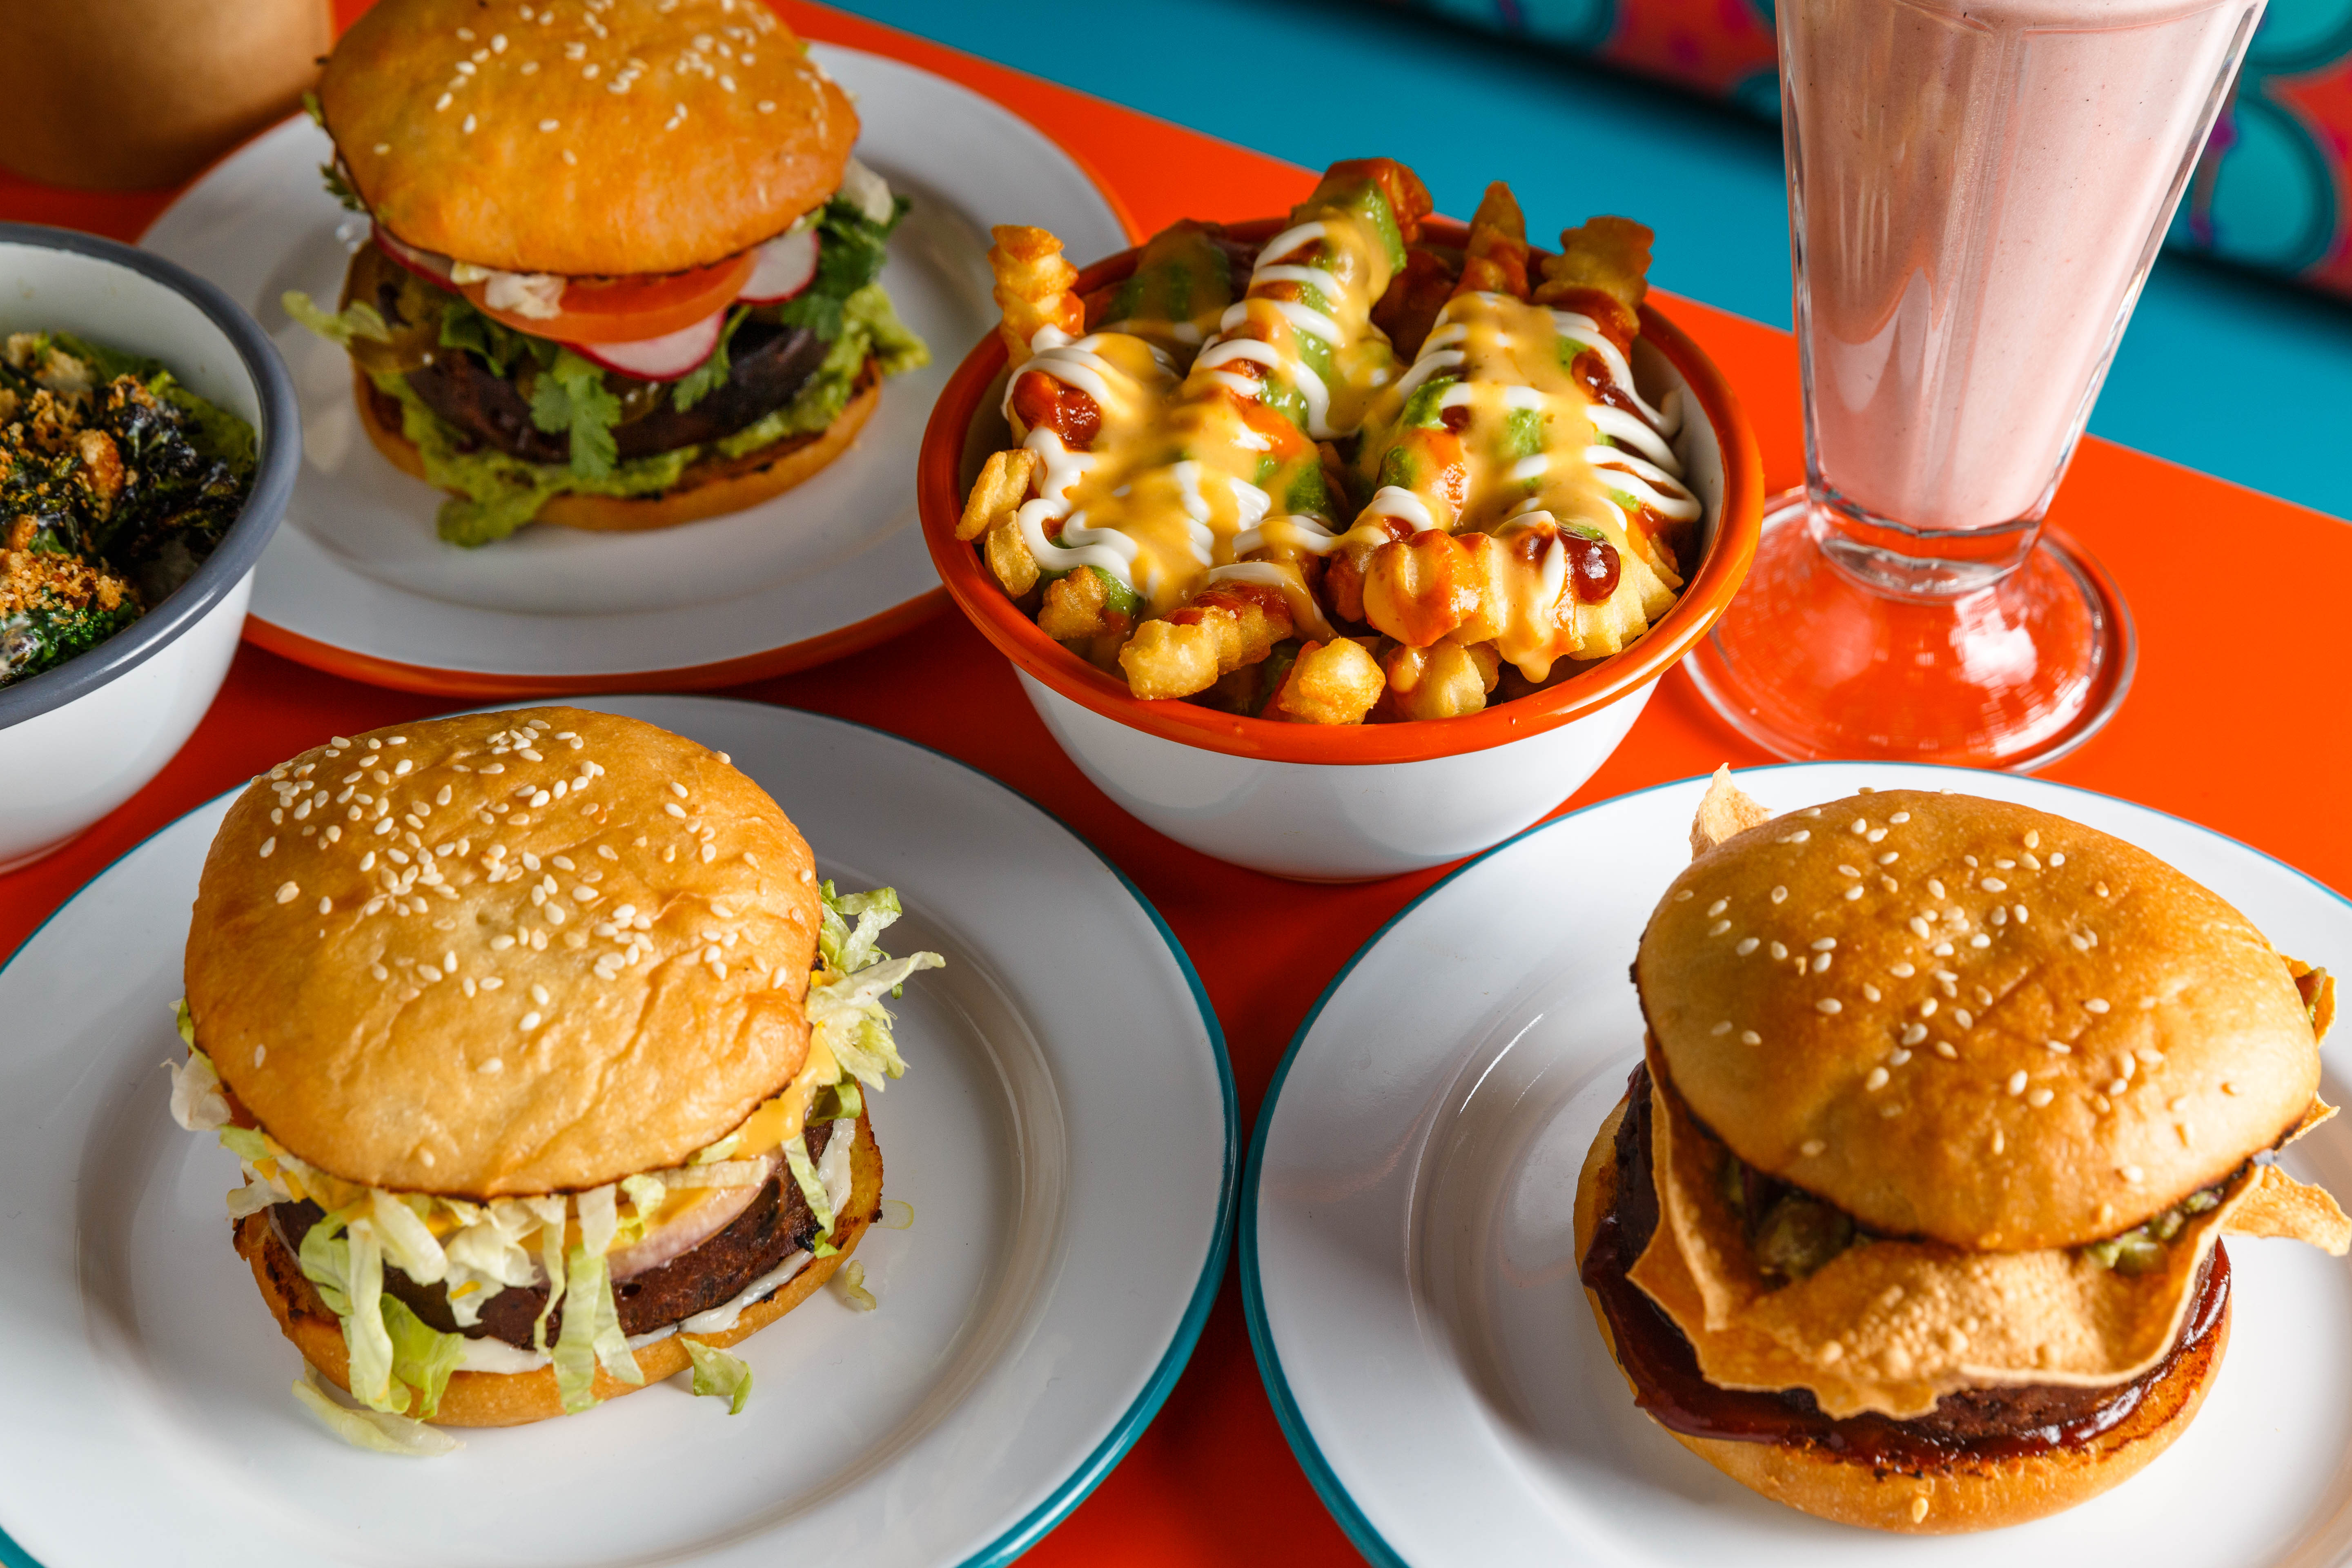 Dirt Candy Chef's New Veggie Burger Spot Is the Cutting Edge of Junk Food